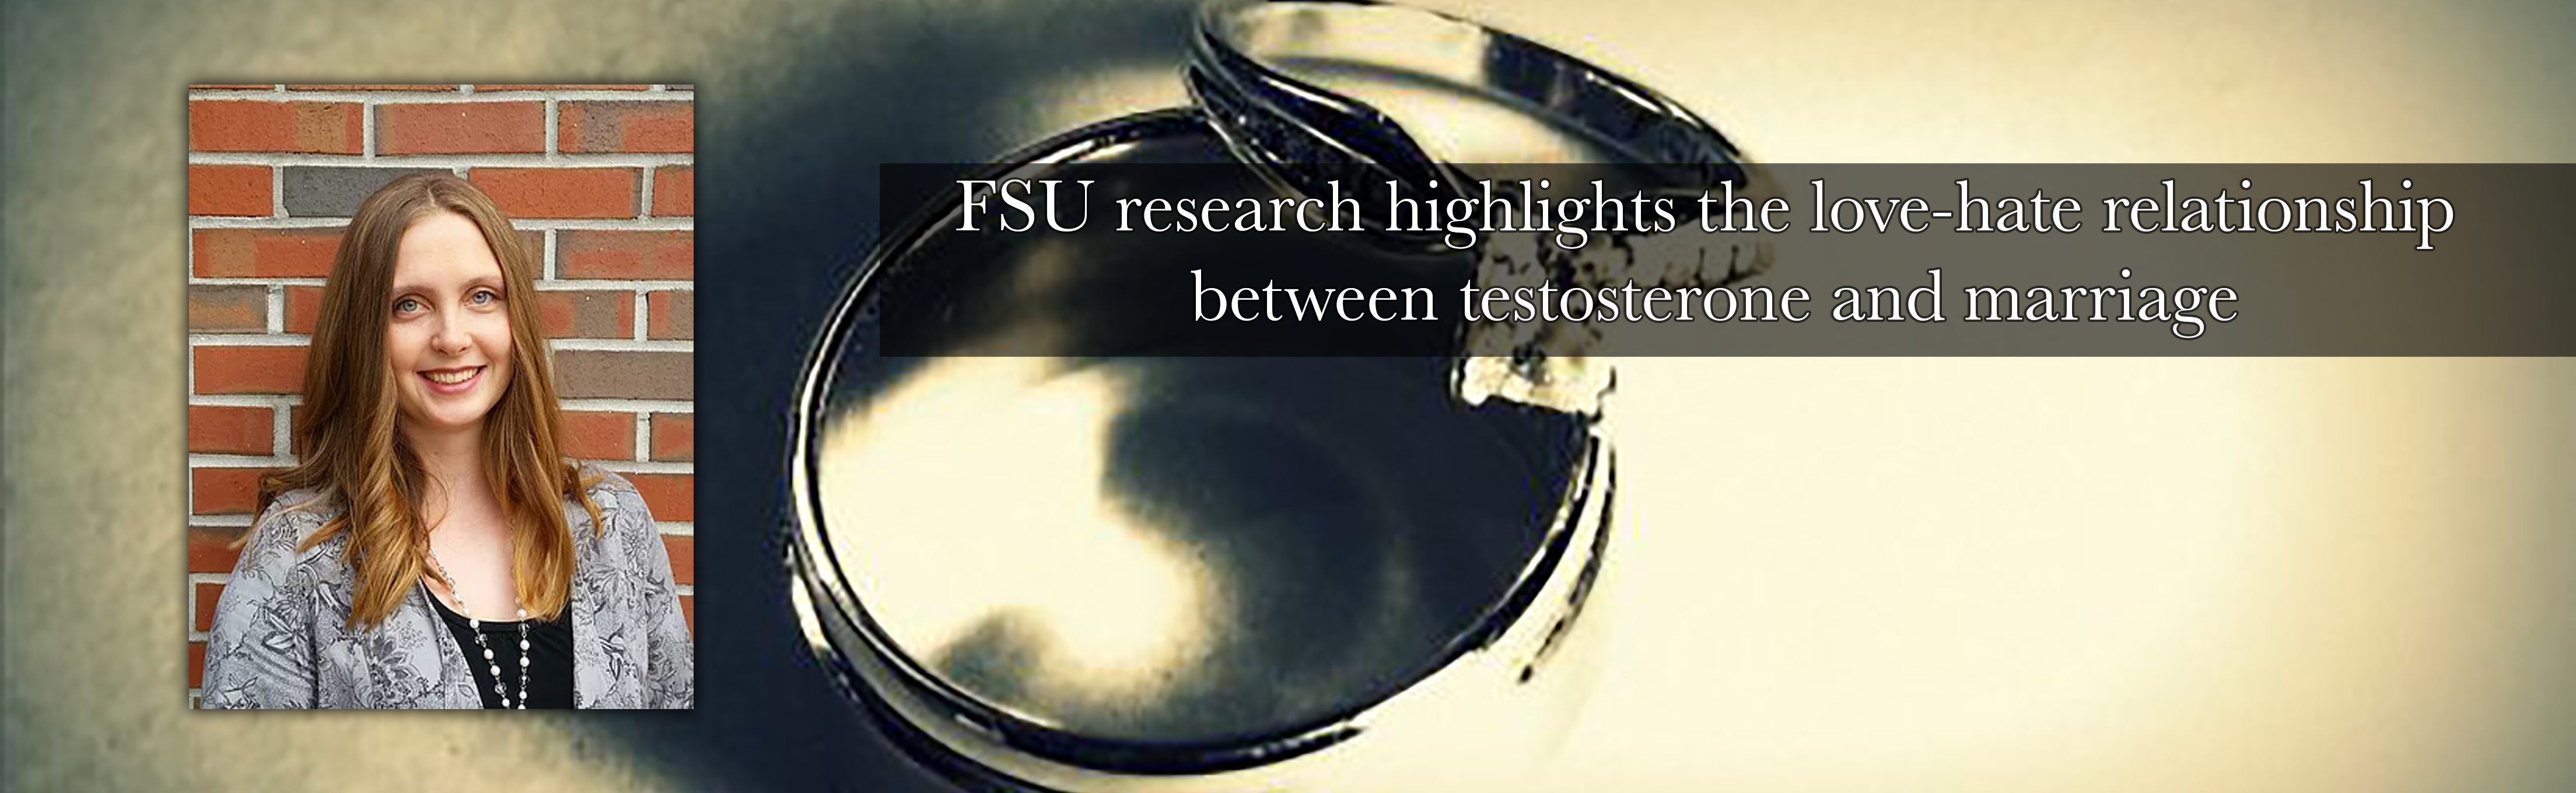 FSU research highlights the love-hate relationship between testosterone and marriage